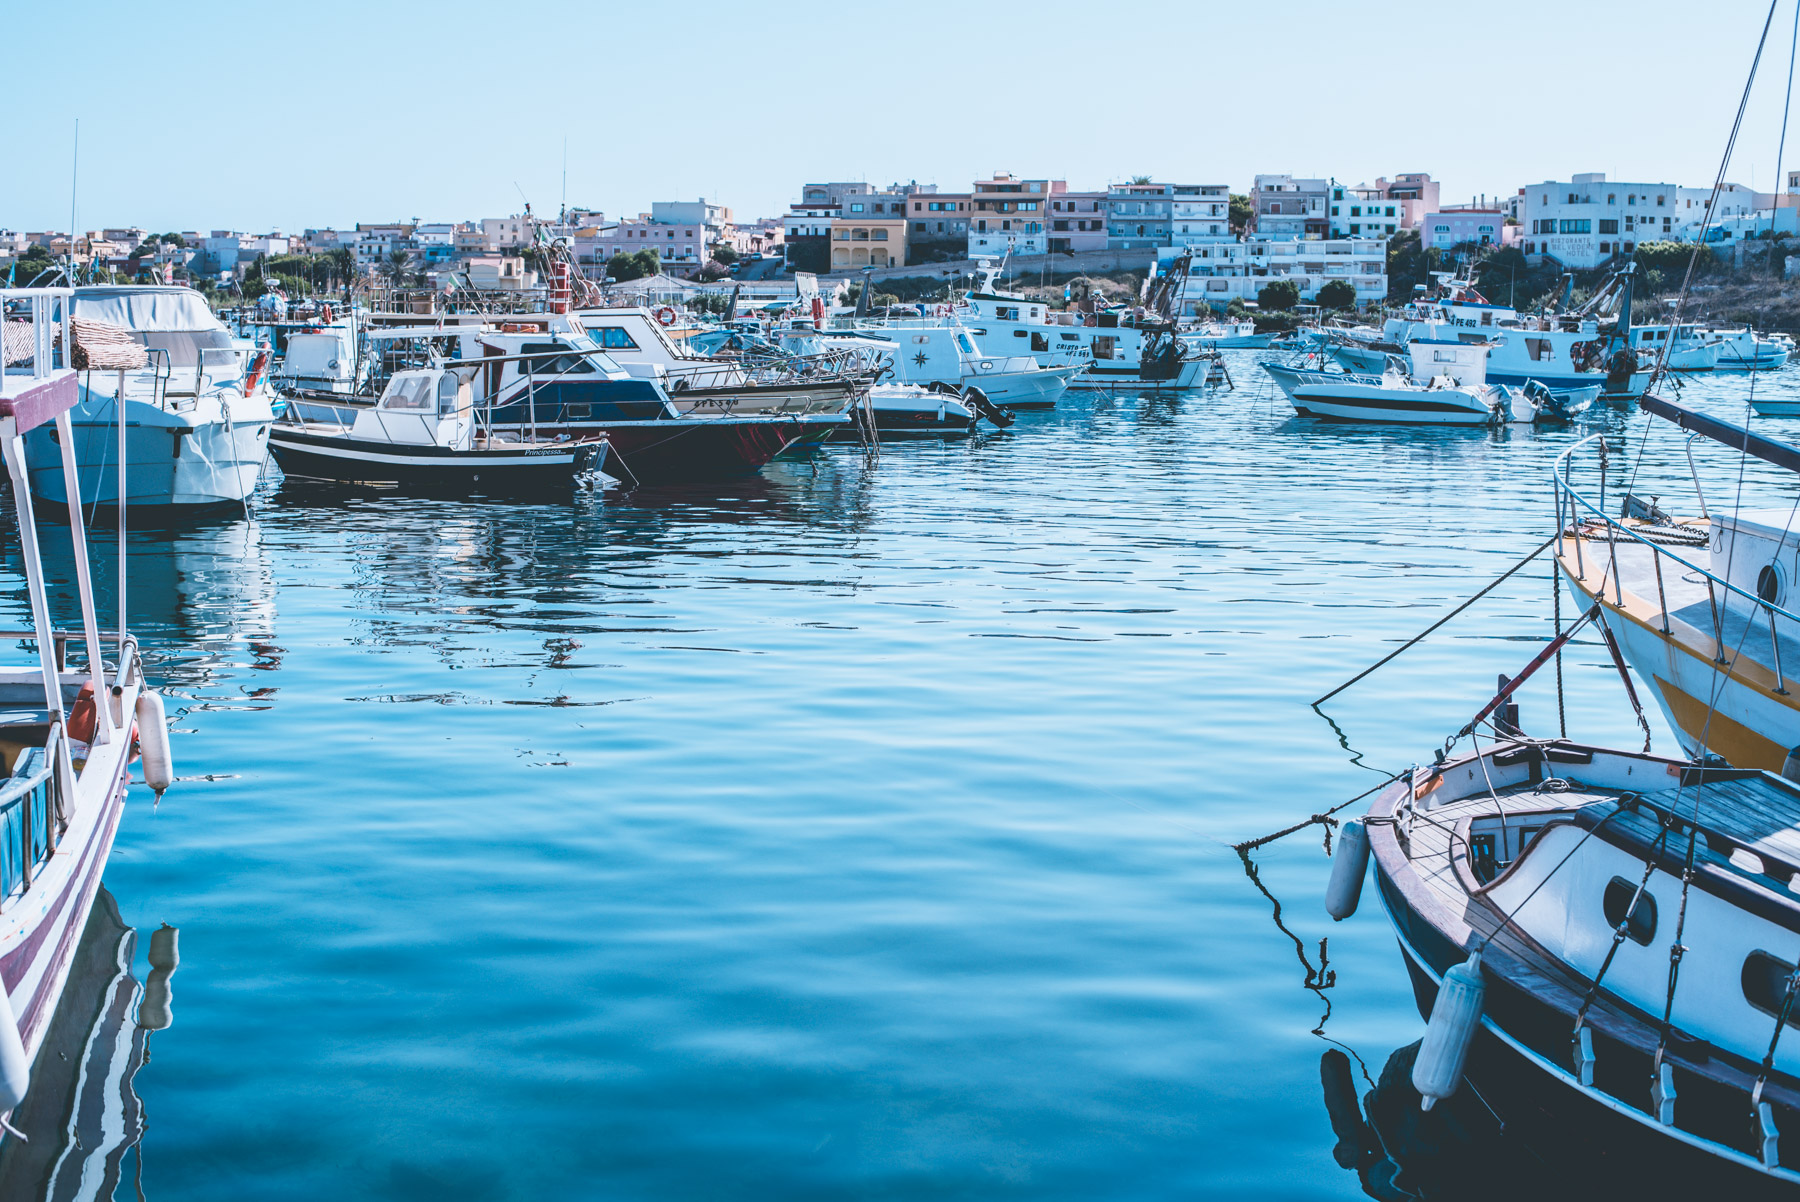 the harbour of Lampedusa with the blue sea and many boats